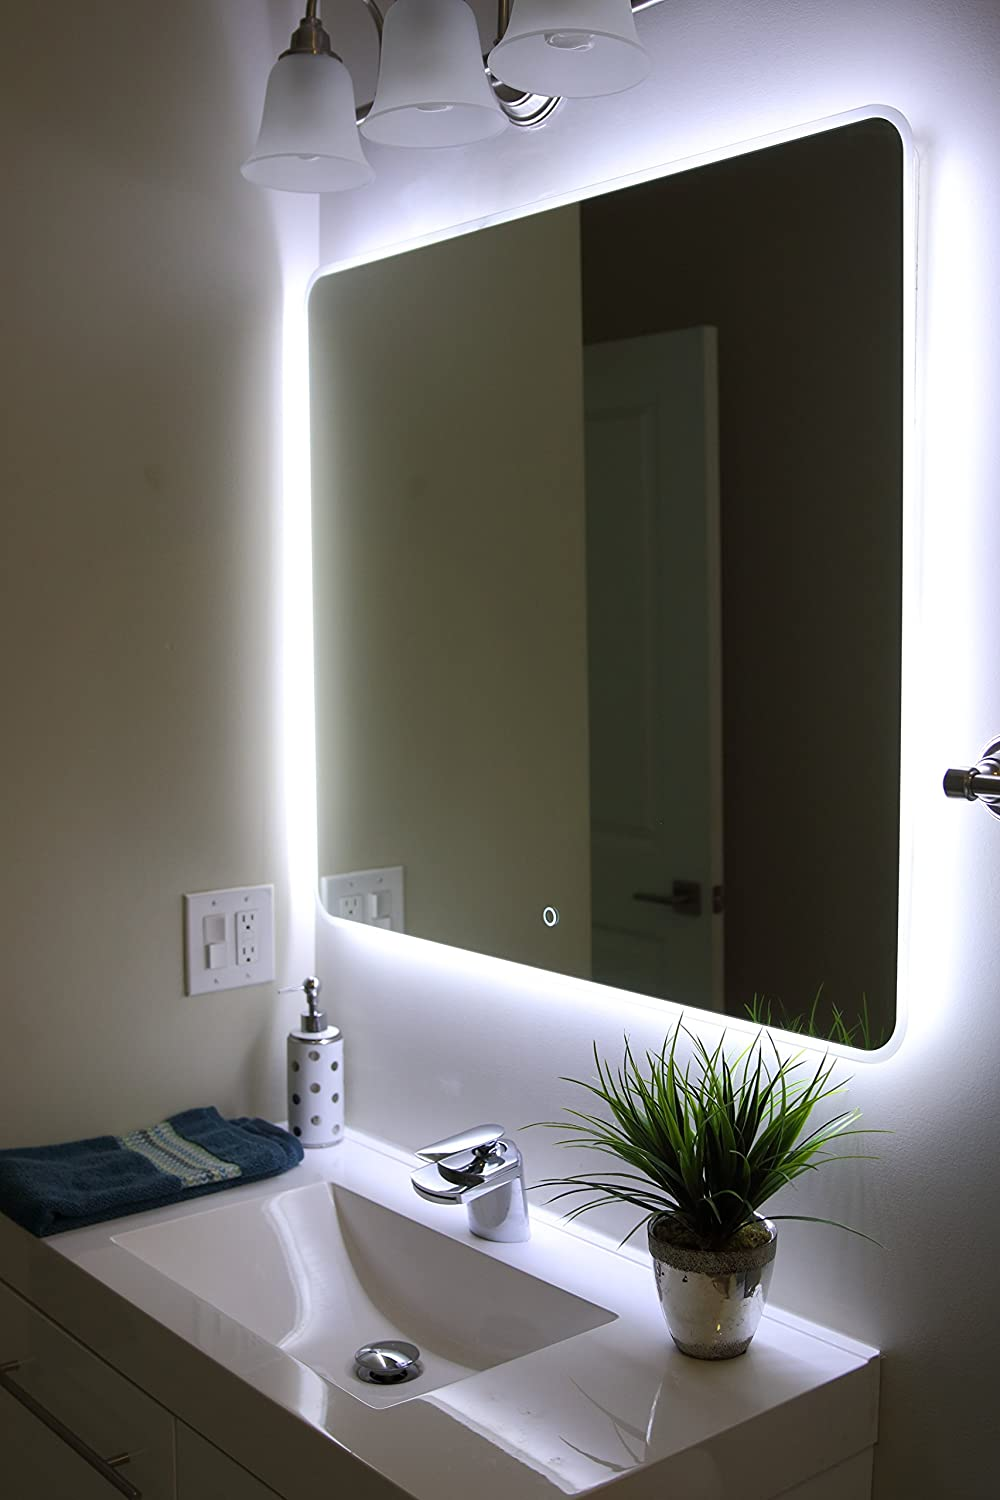 Amazon windbay backlit led light bathroom vanity sink mirror amazon windbay backlit led light bathroom vanity sink mirror illuminated mirror 36 home kitchen aloadofball